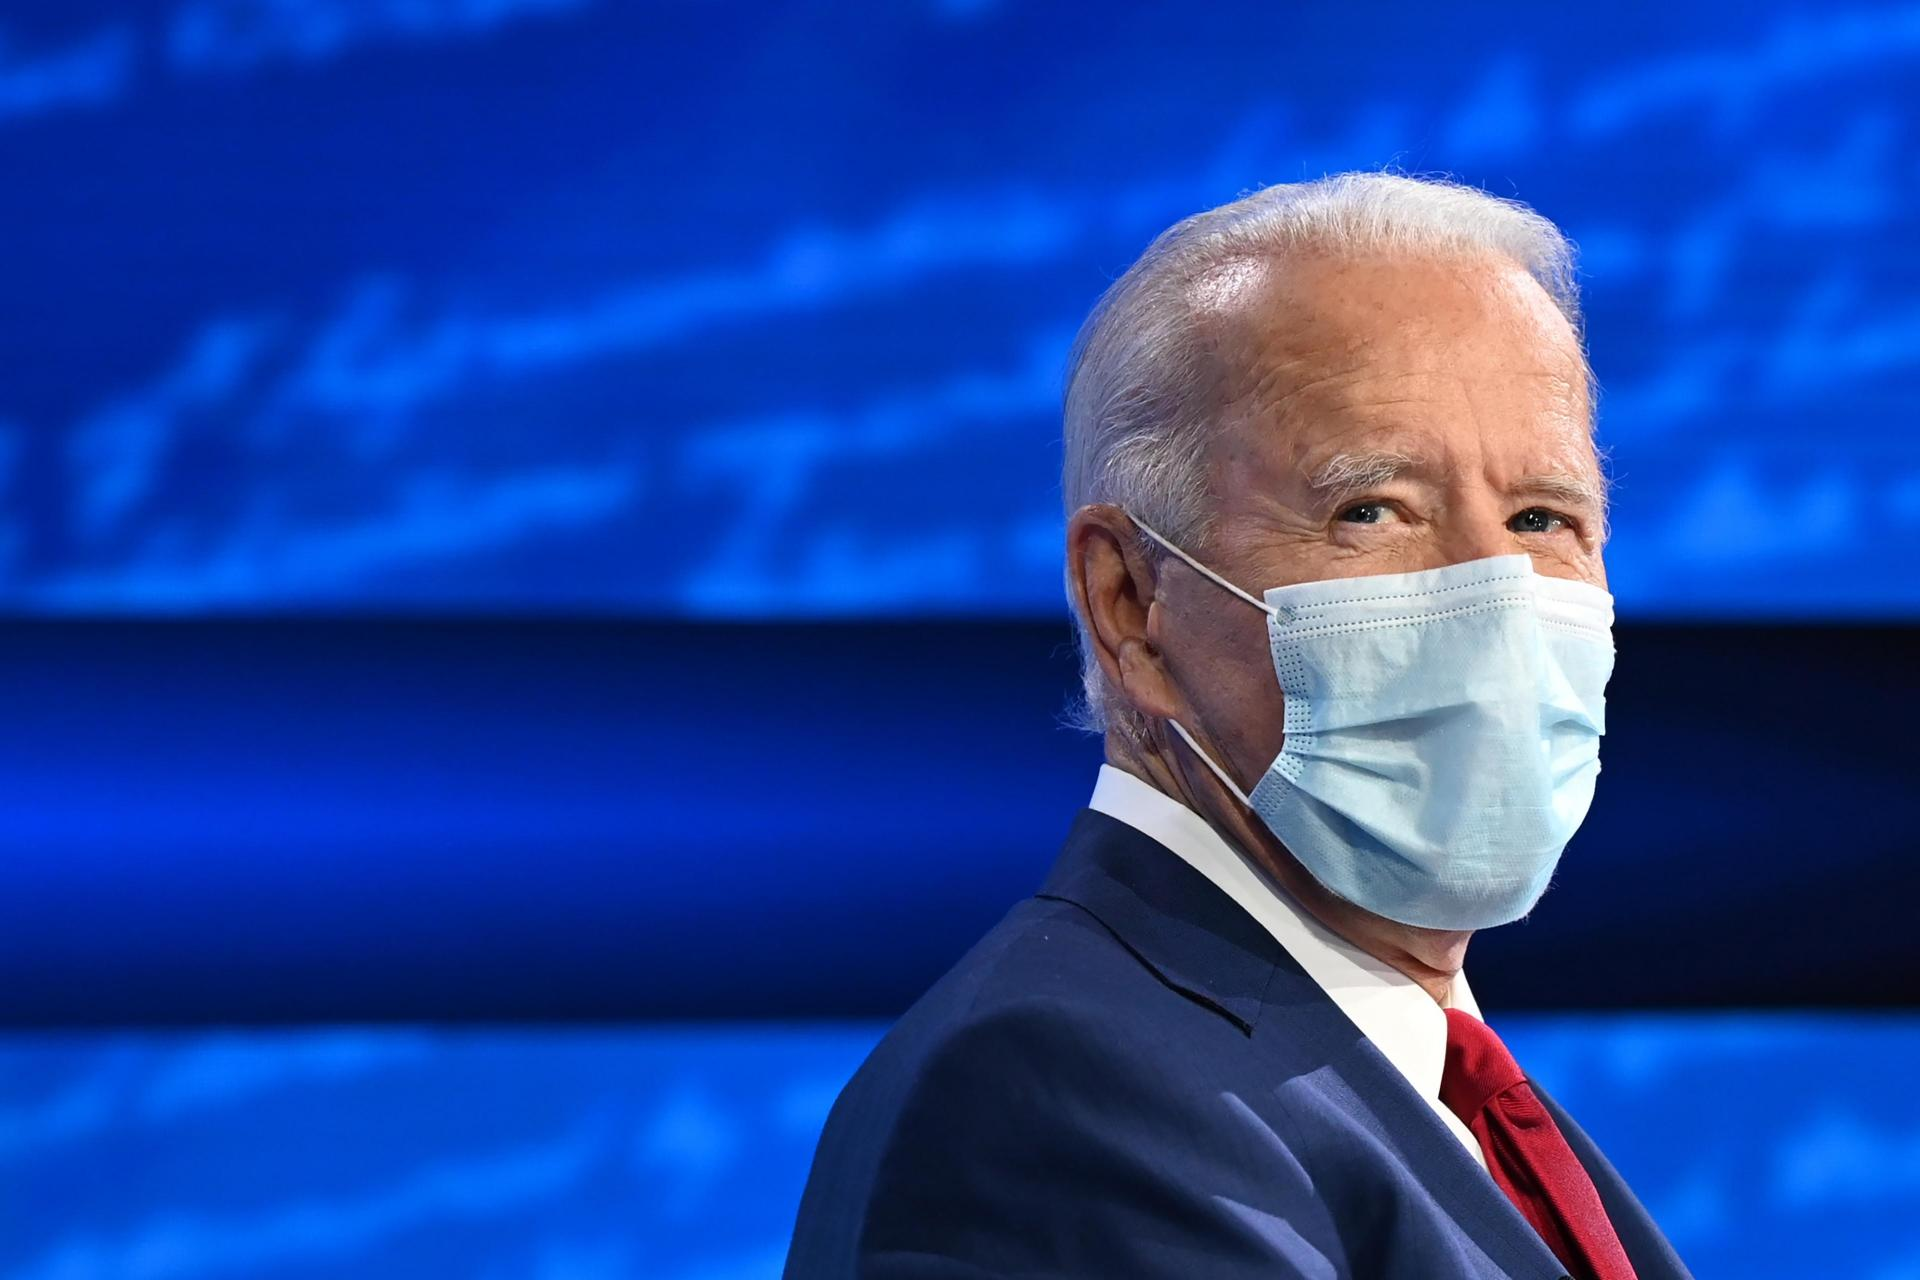 Democratic Presidential candidate and former US Vice President Joe Biden. Photo: AFP